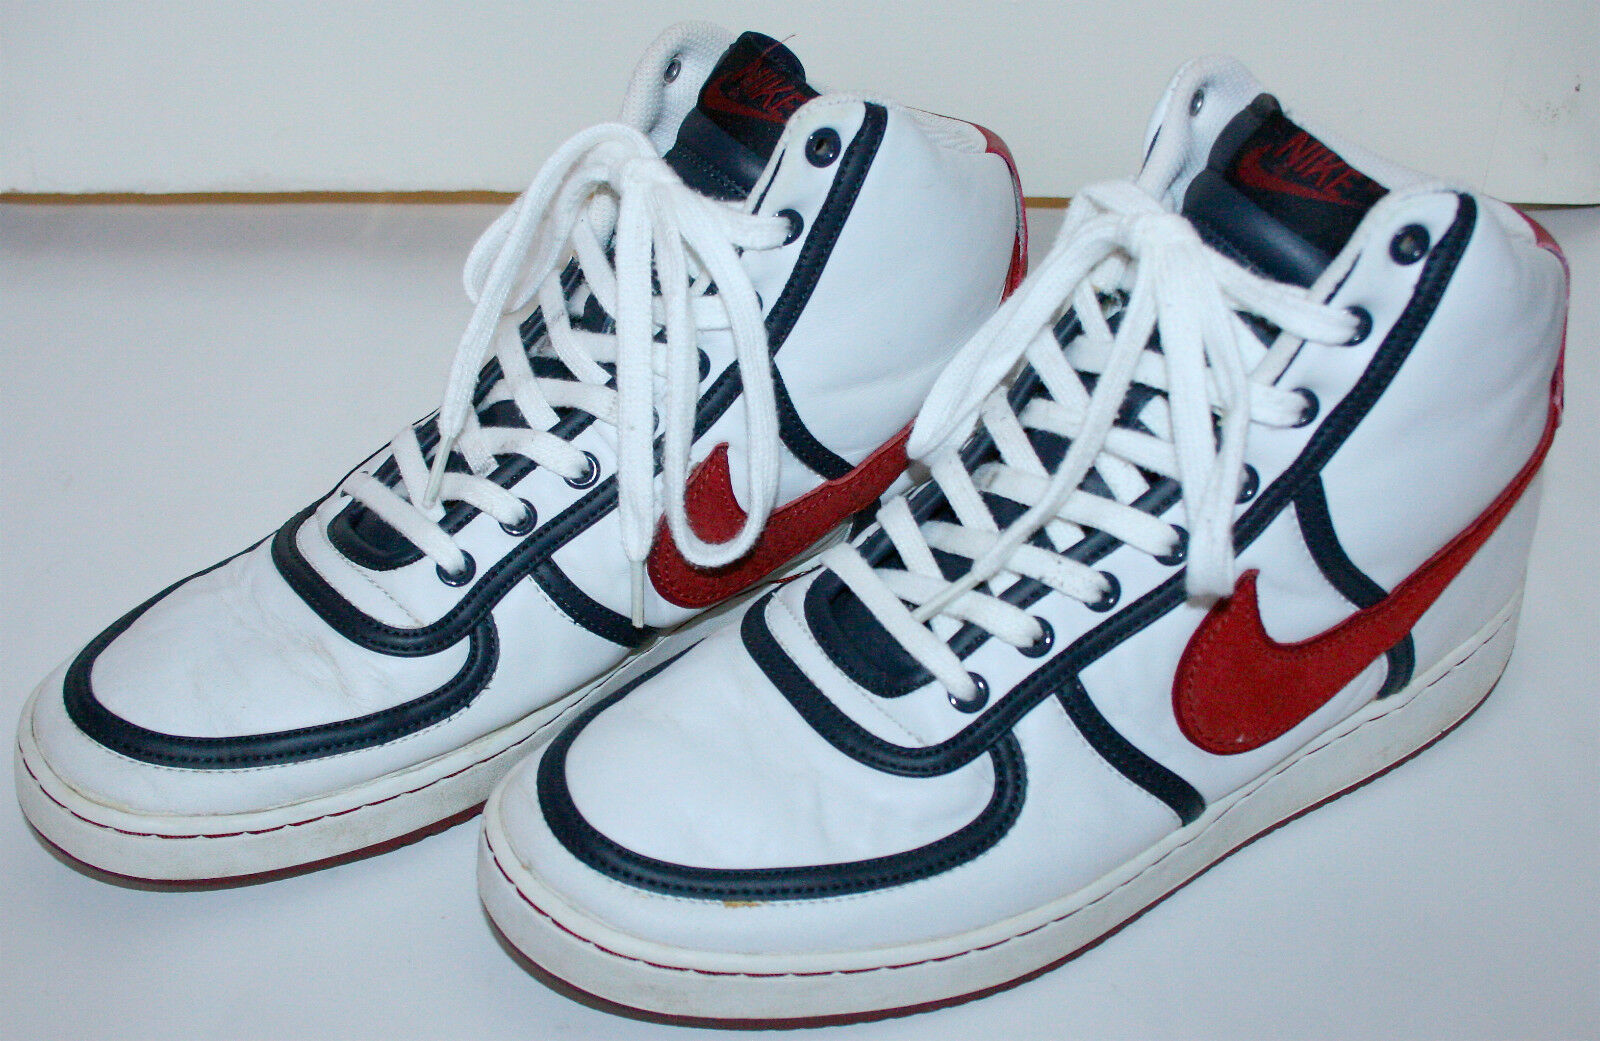 Nike Vandal High Basketball White Navy Red 12 US, 46 EUR, 30CM, 11 Excellent